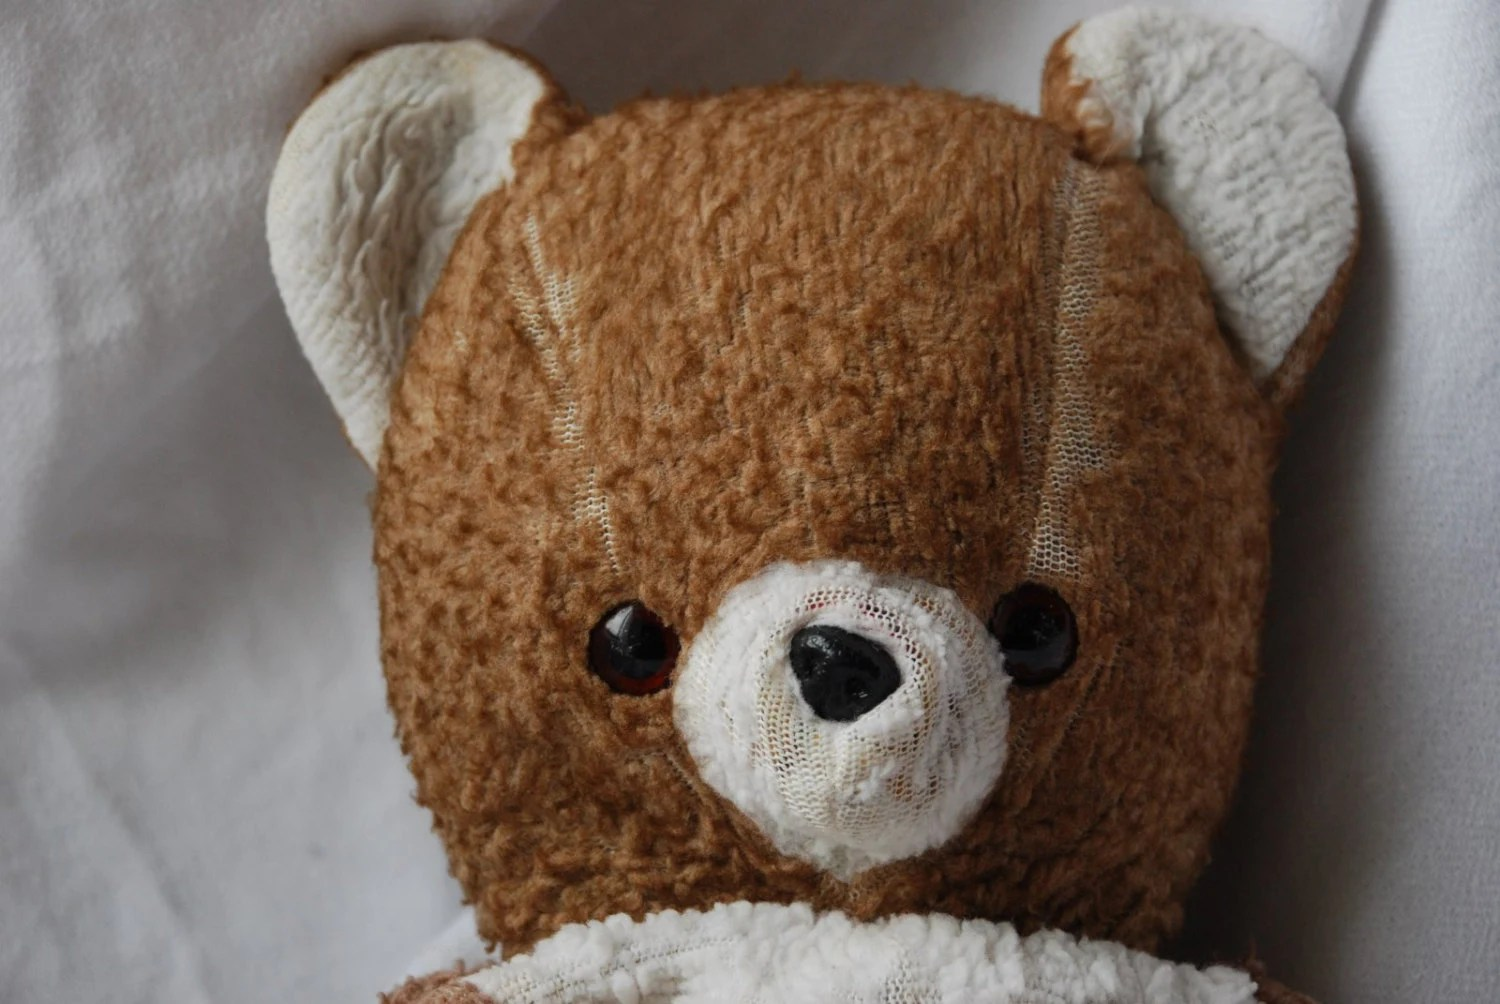 Vintage Soft Brown Teddy Bear Toy Animal 1960s Well Loved